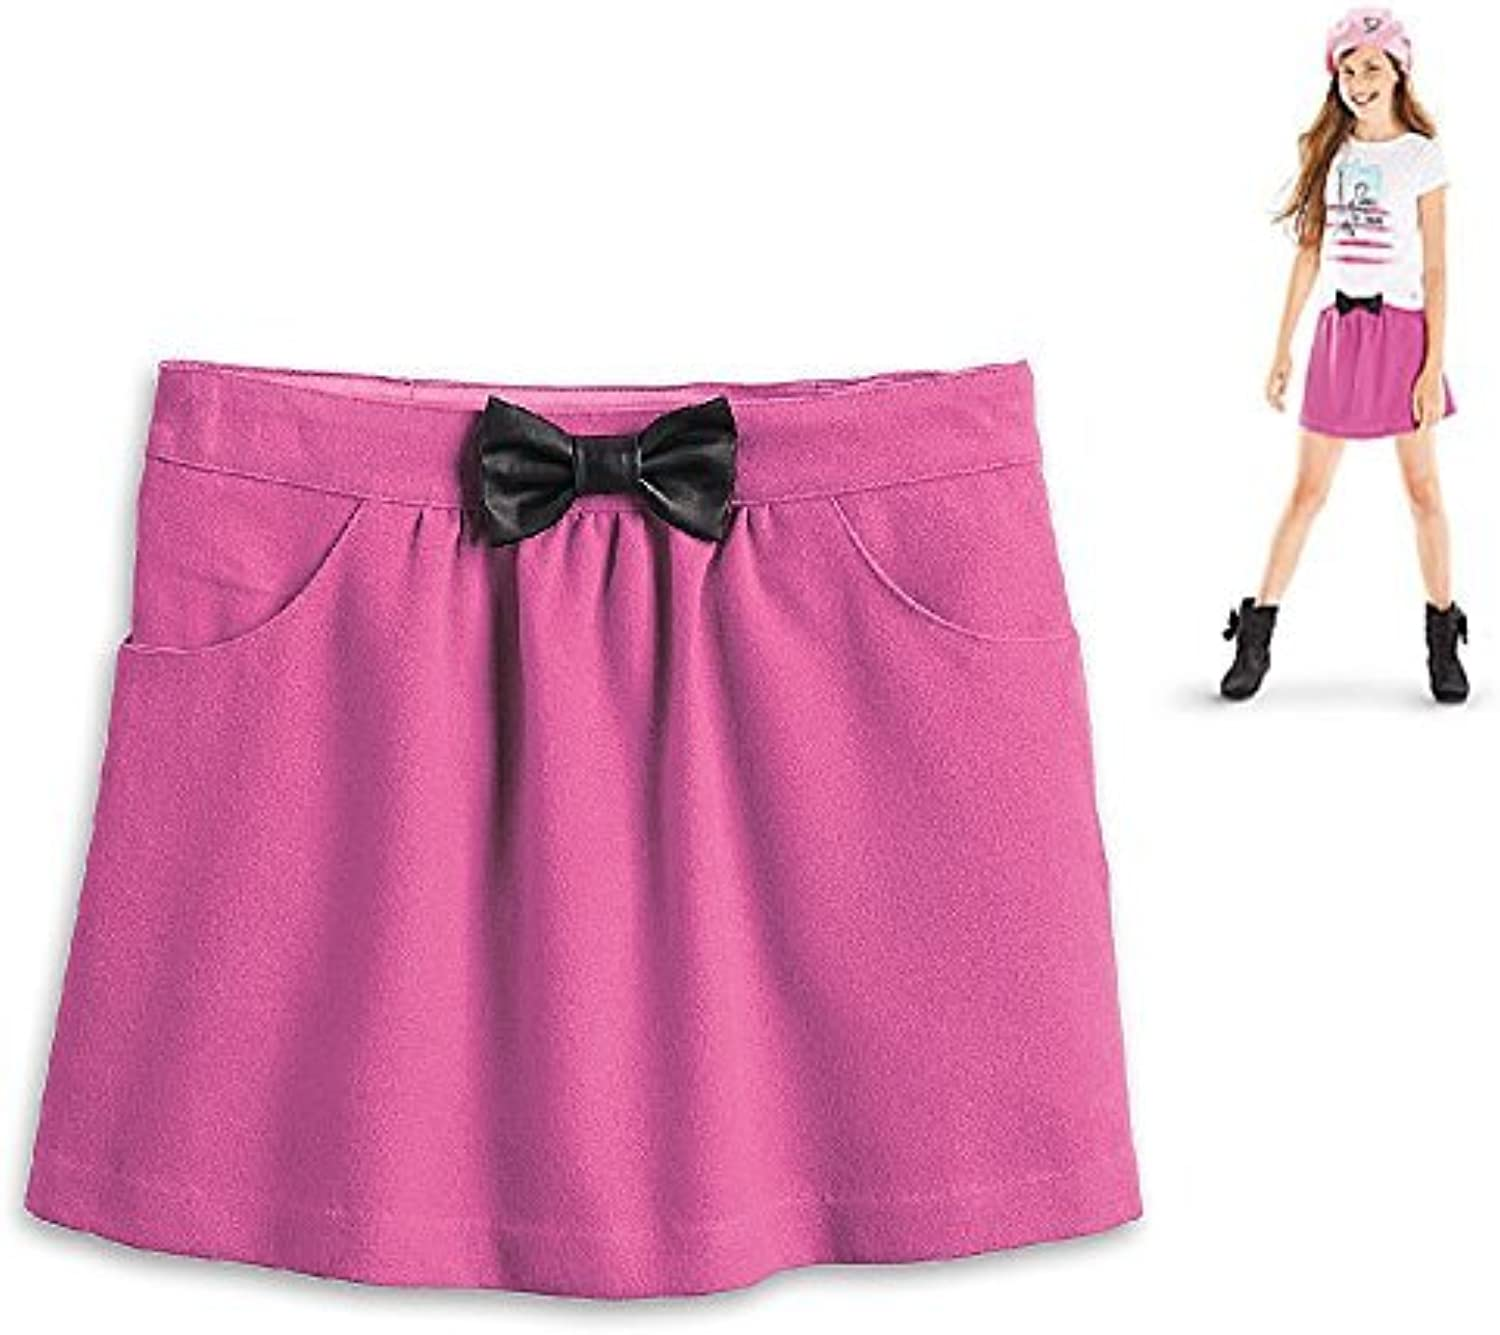 American Girl Grace's Meet Skirt for Girls Size 16 (Tee Sold Separately) by American Girl